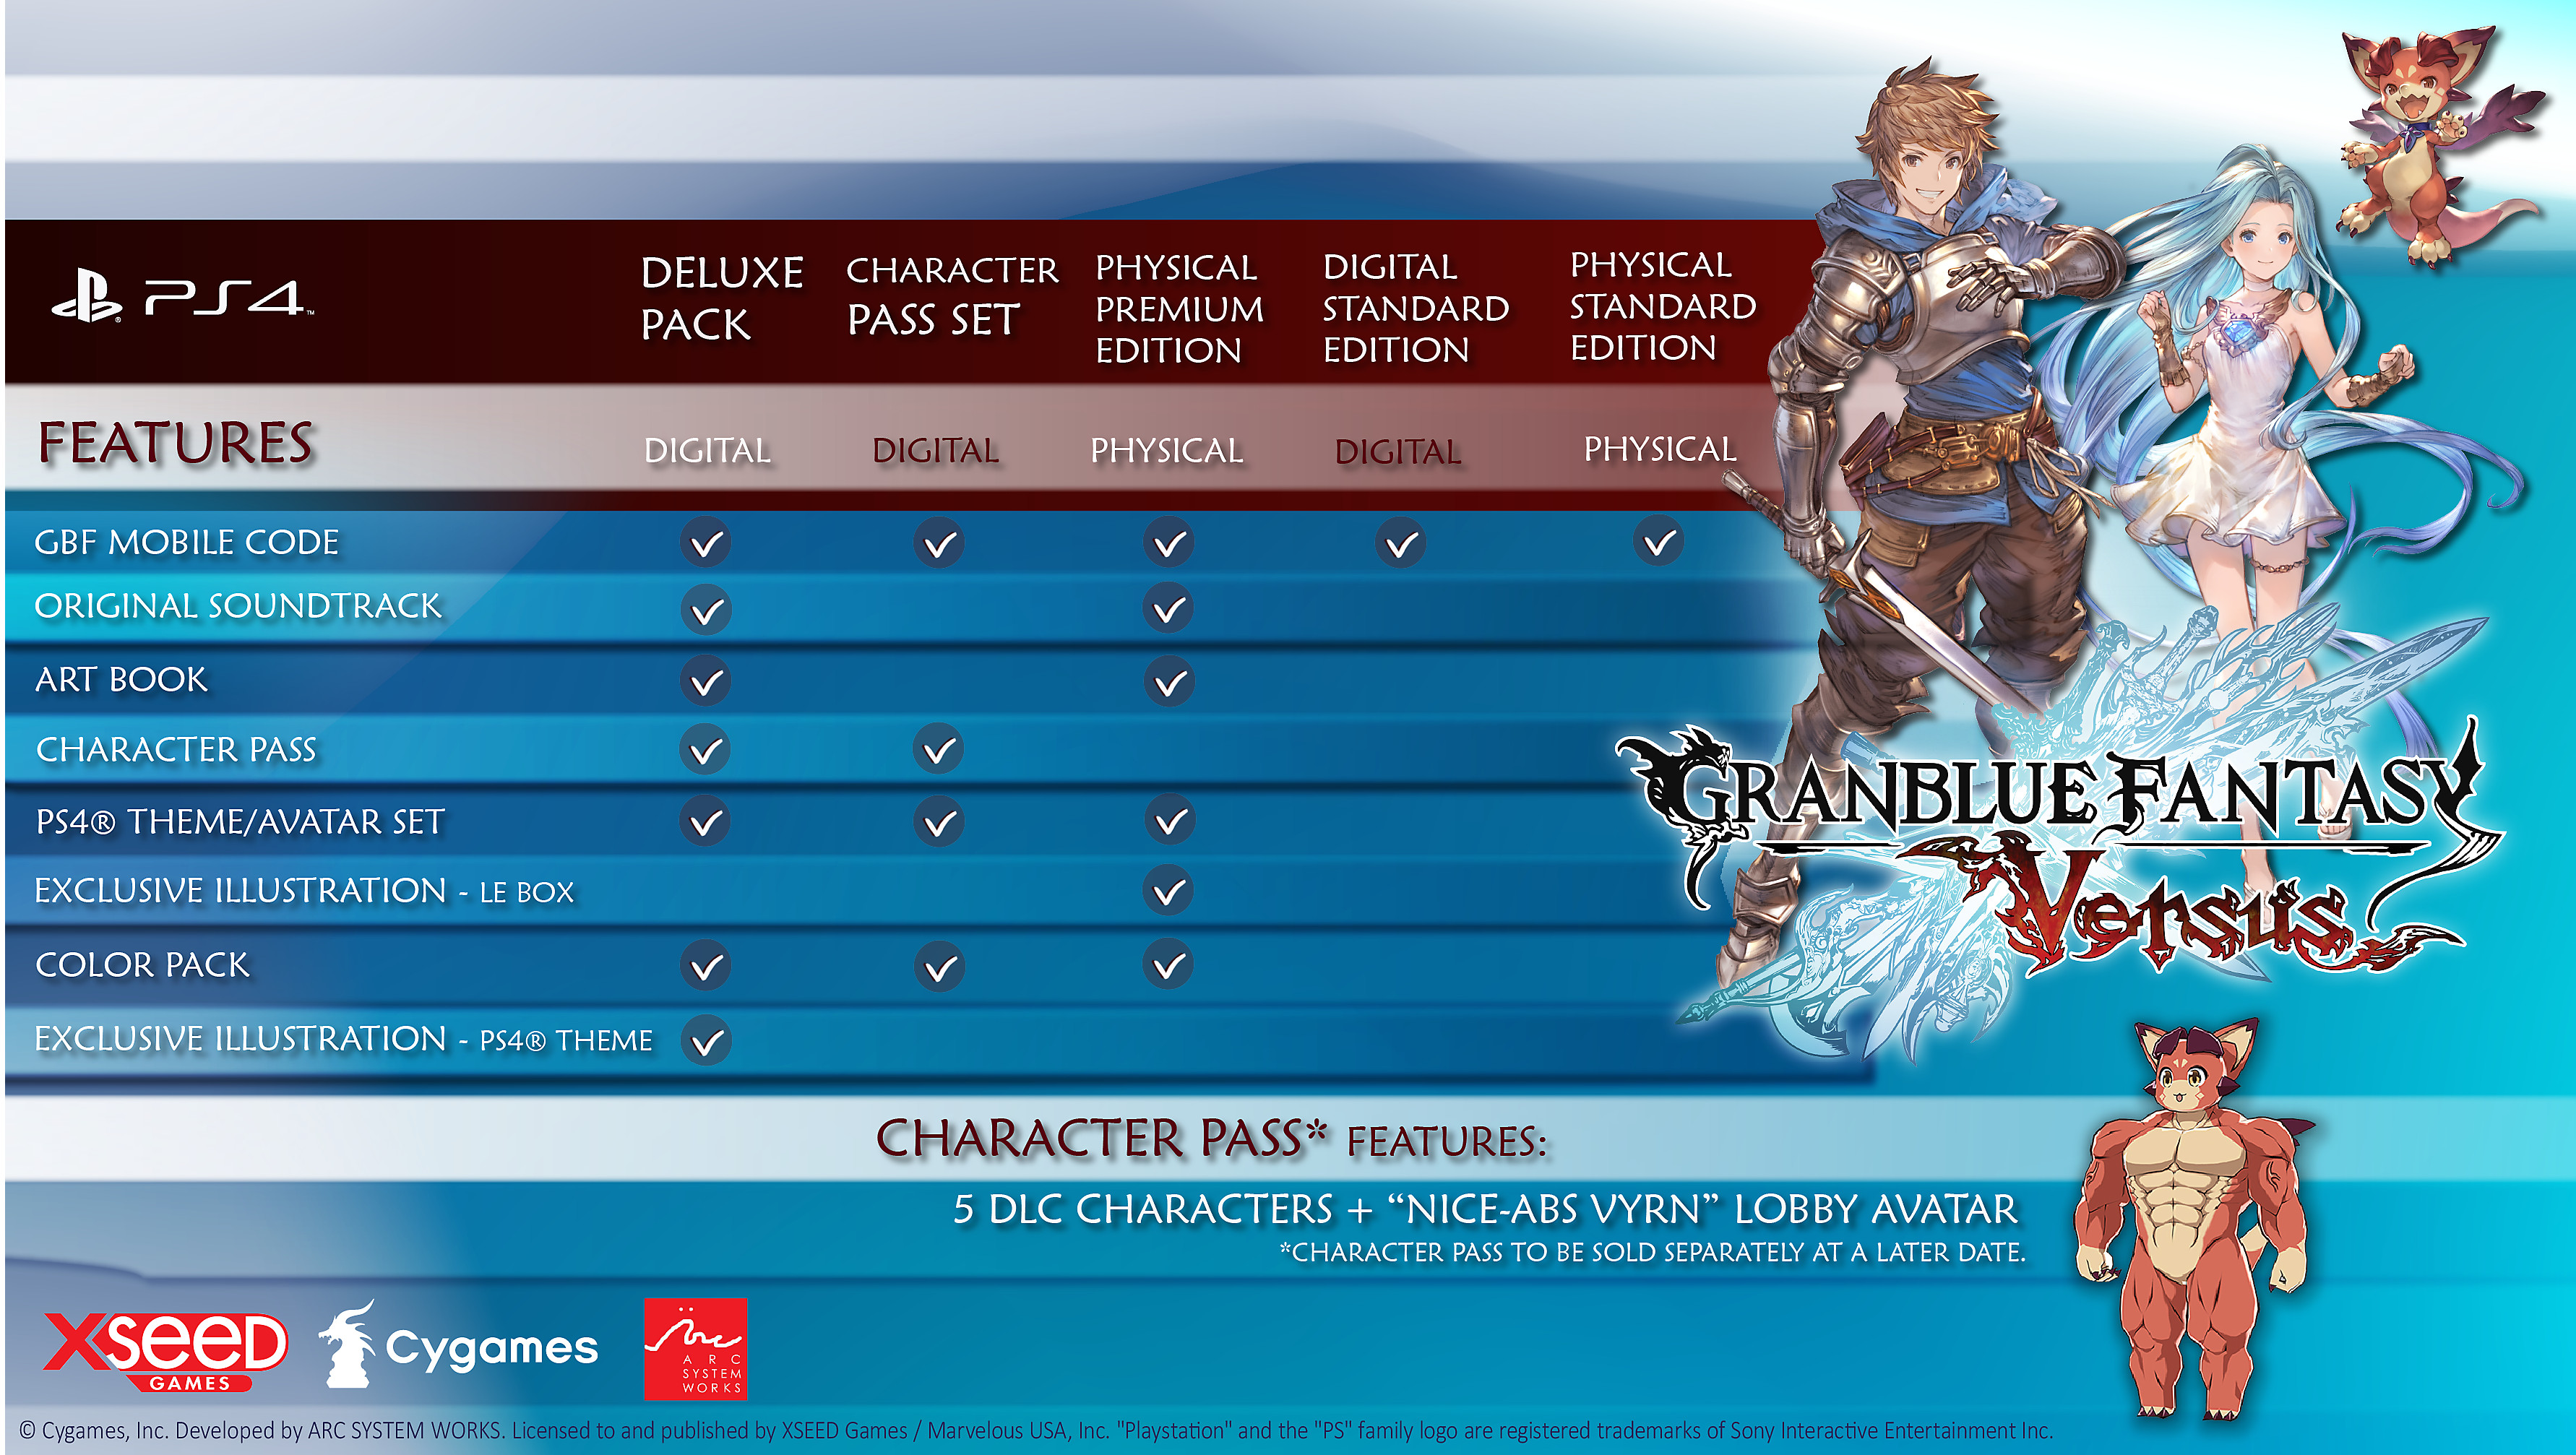 Granblue Fantasy: Versus Editions